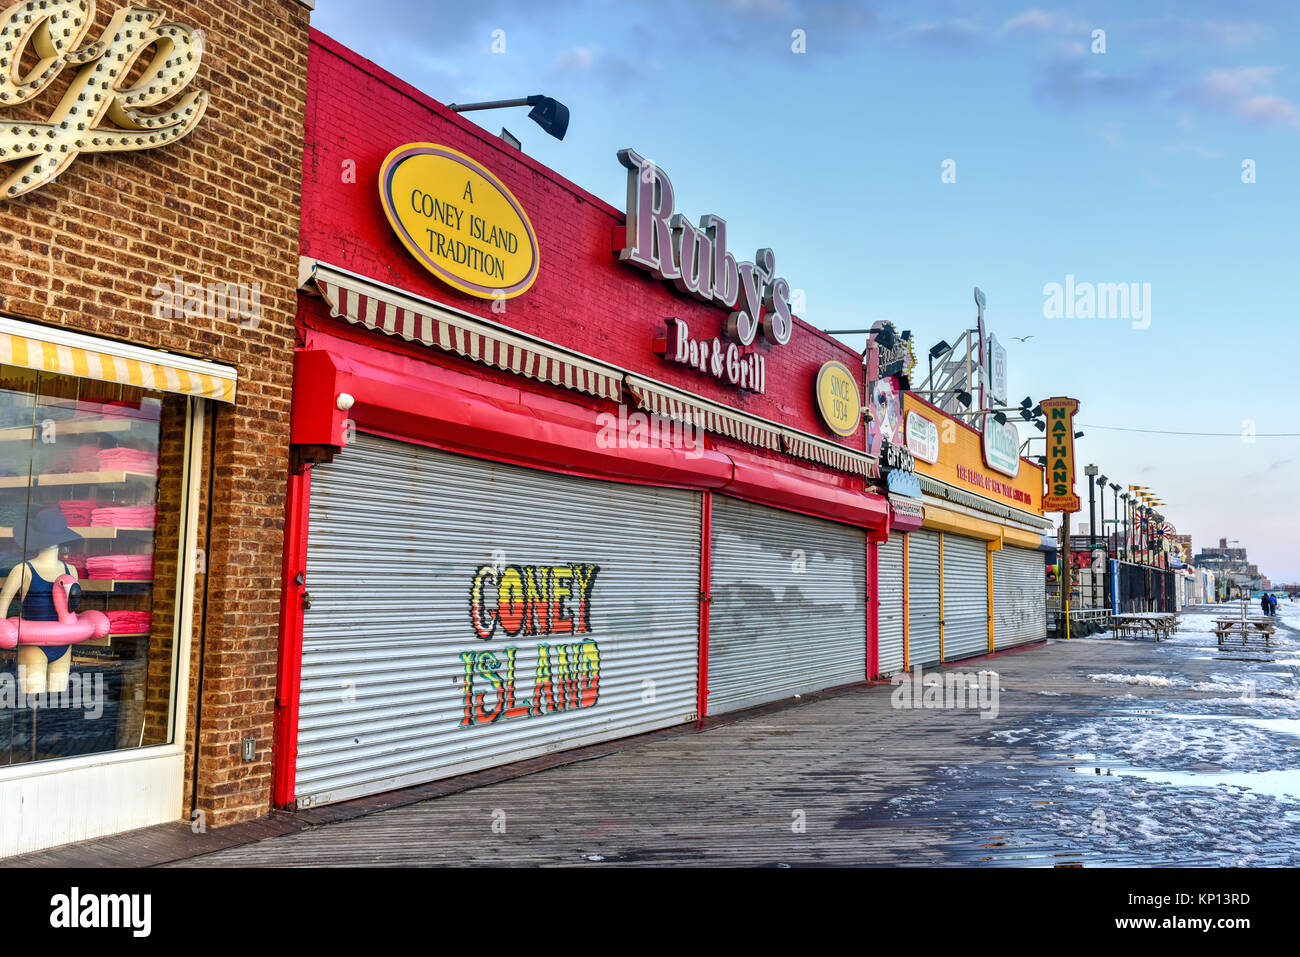 New York City - December 10, 2017: Closed stores along the boardwalk in Coney Island in the winter. - Stock Image